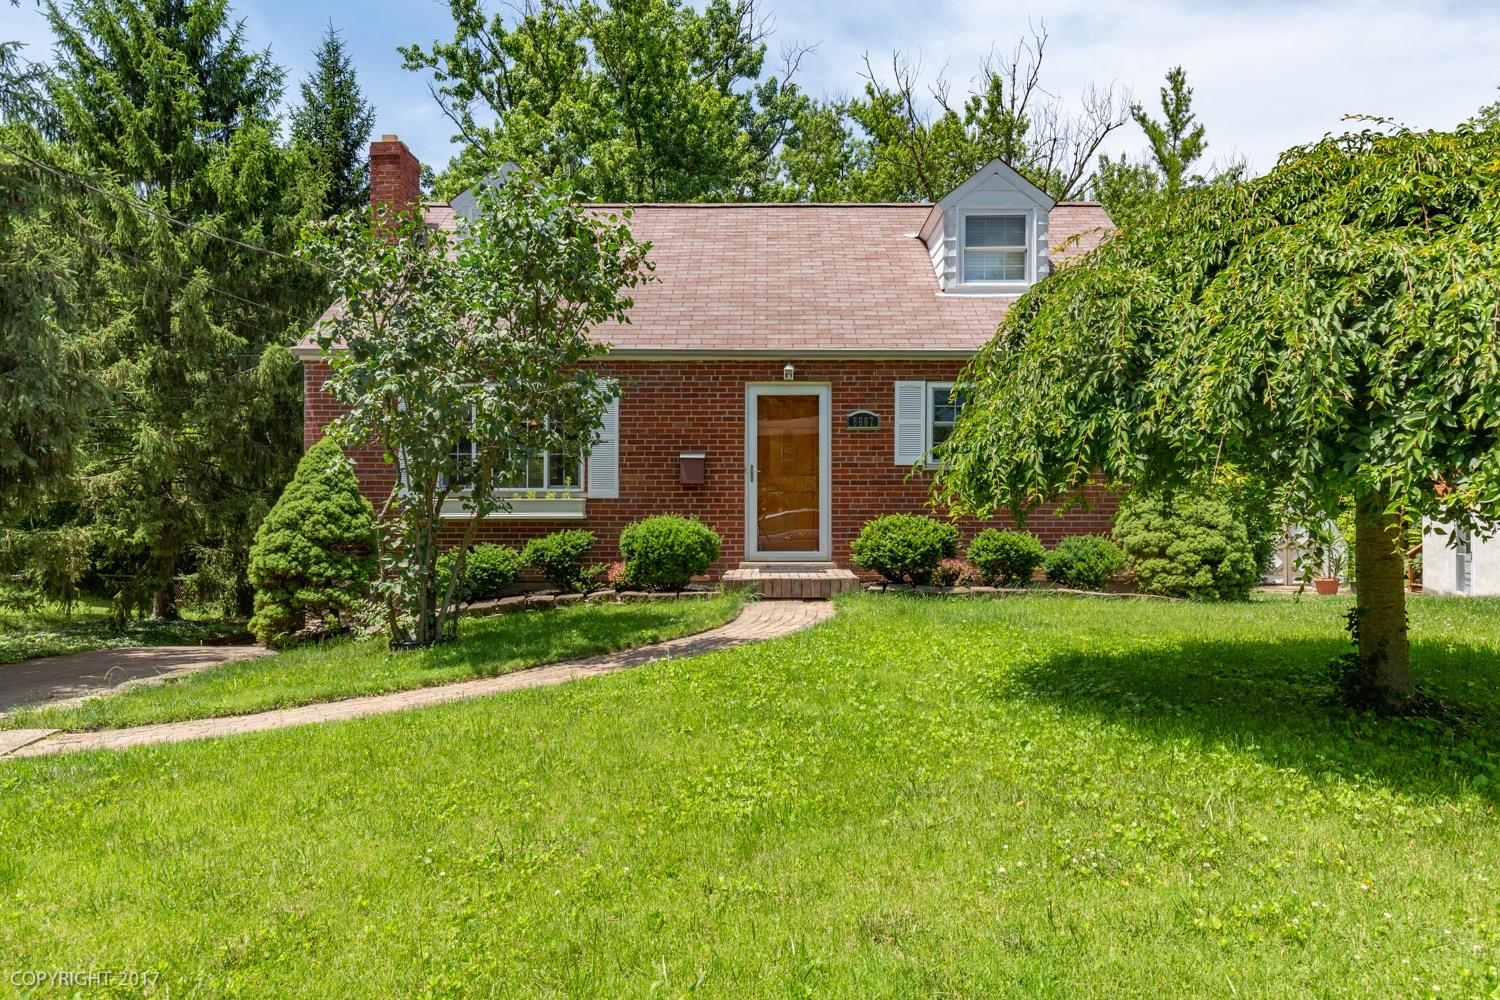 8607 Darnell Ave Dillonvale, OH